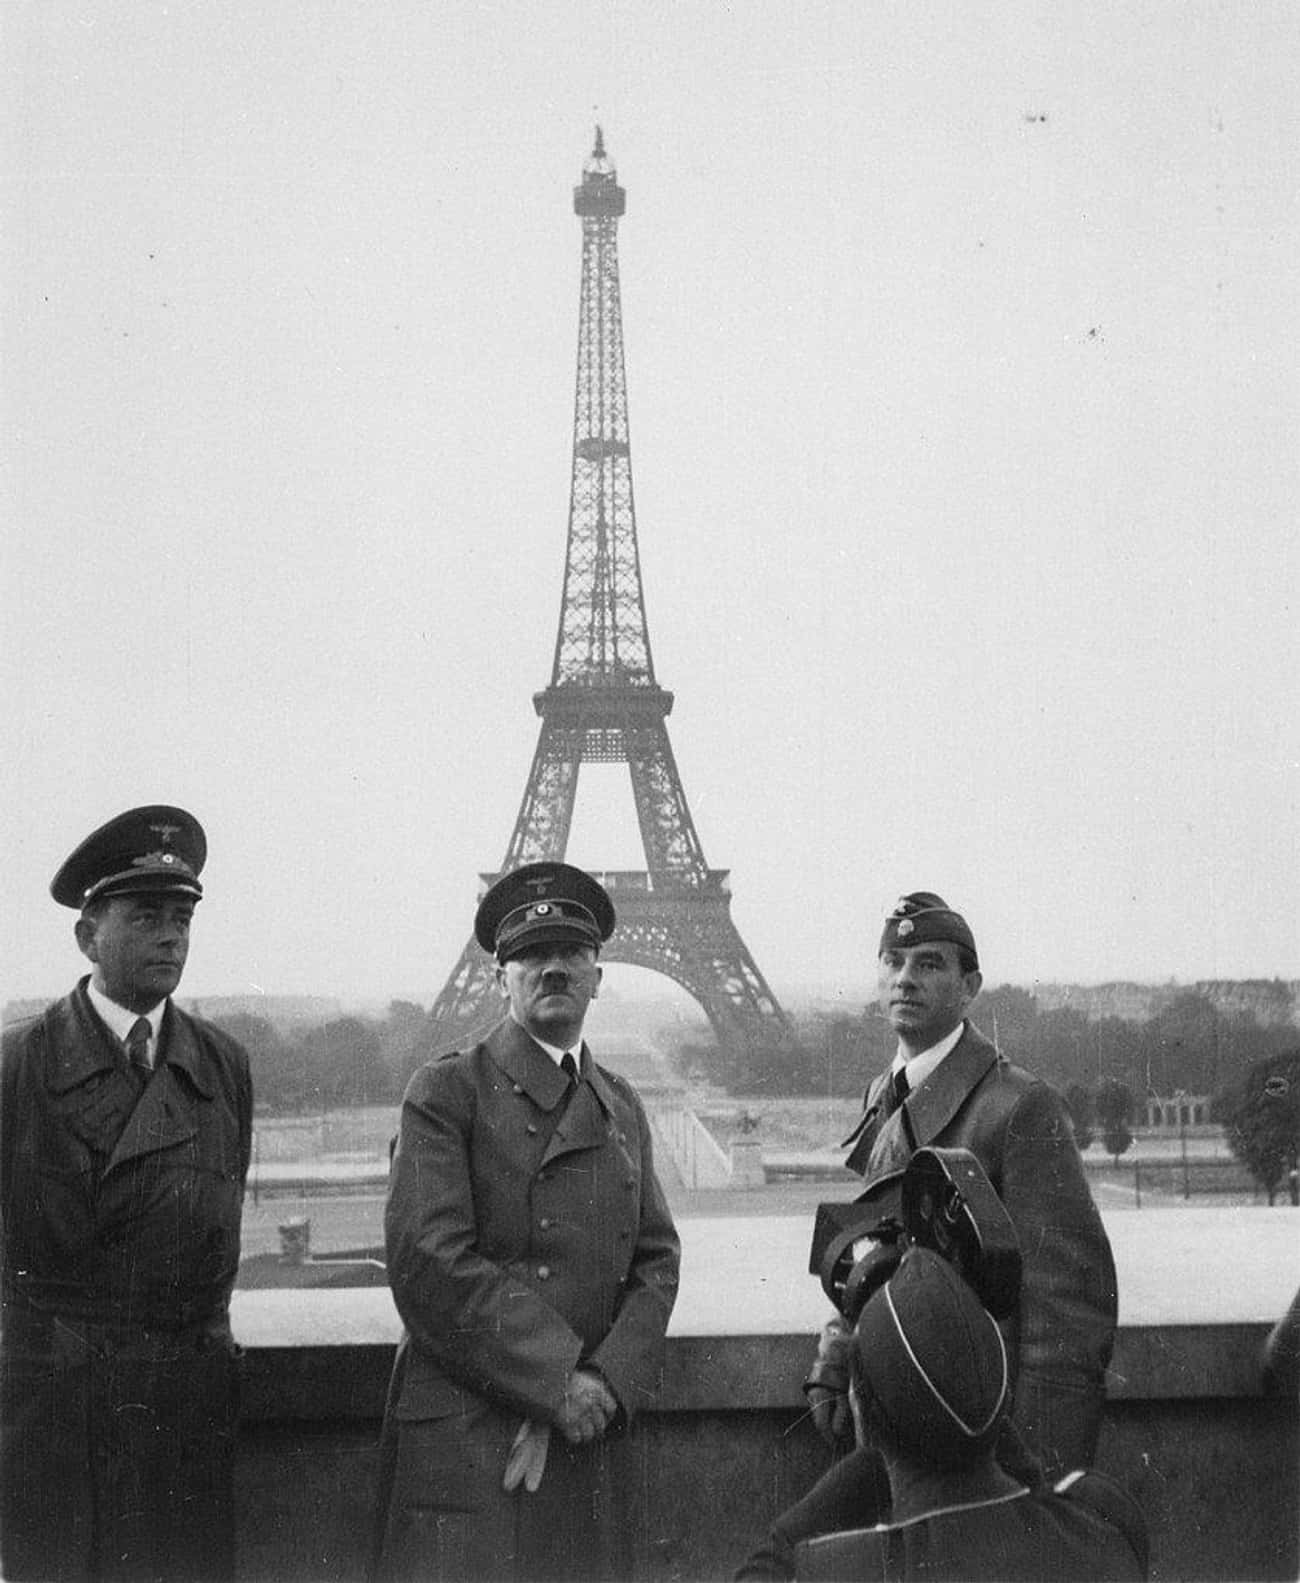 France Surrendered Without A Fight